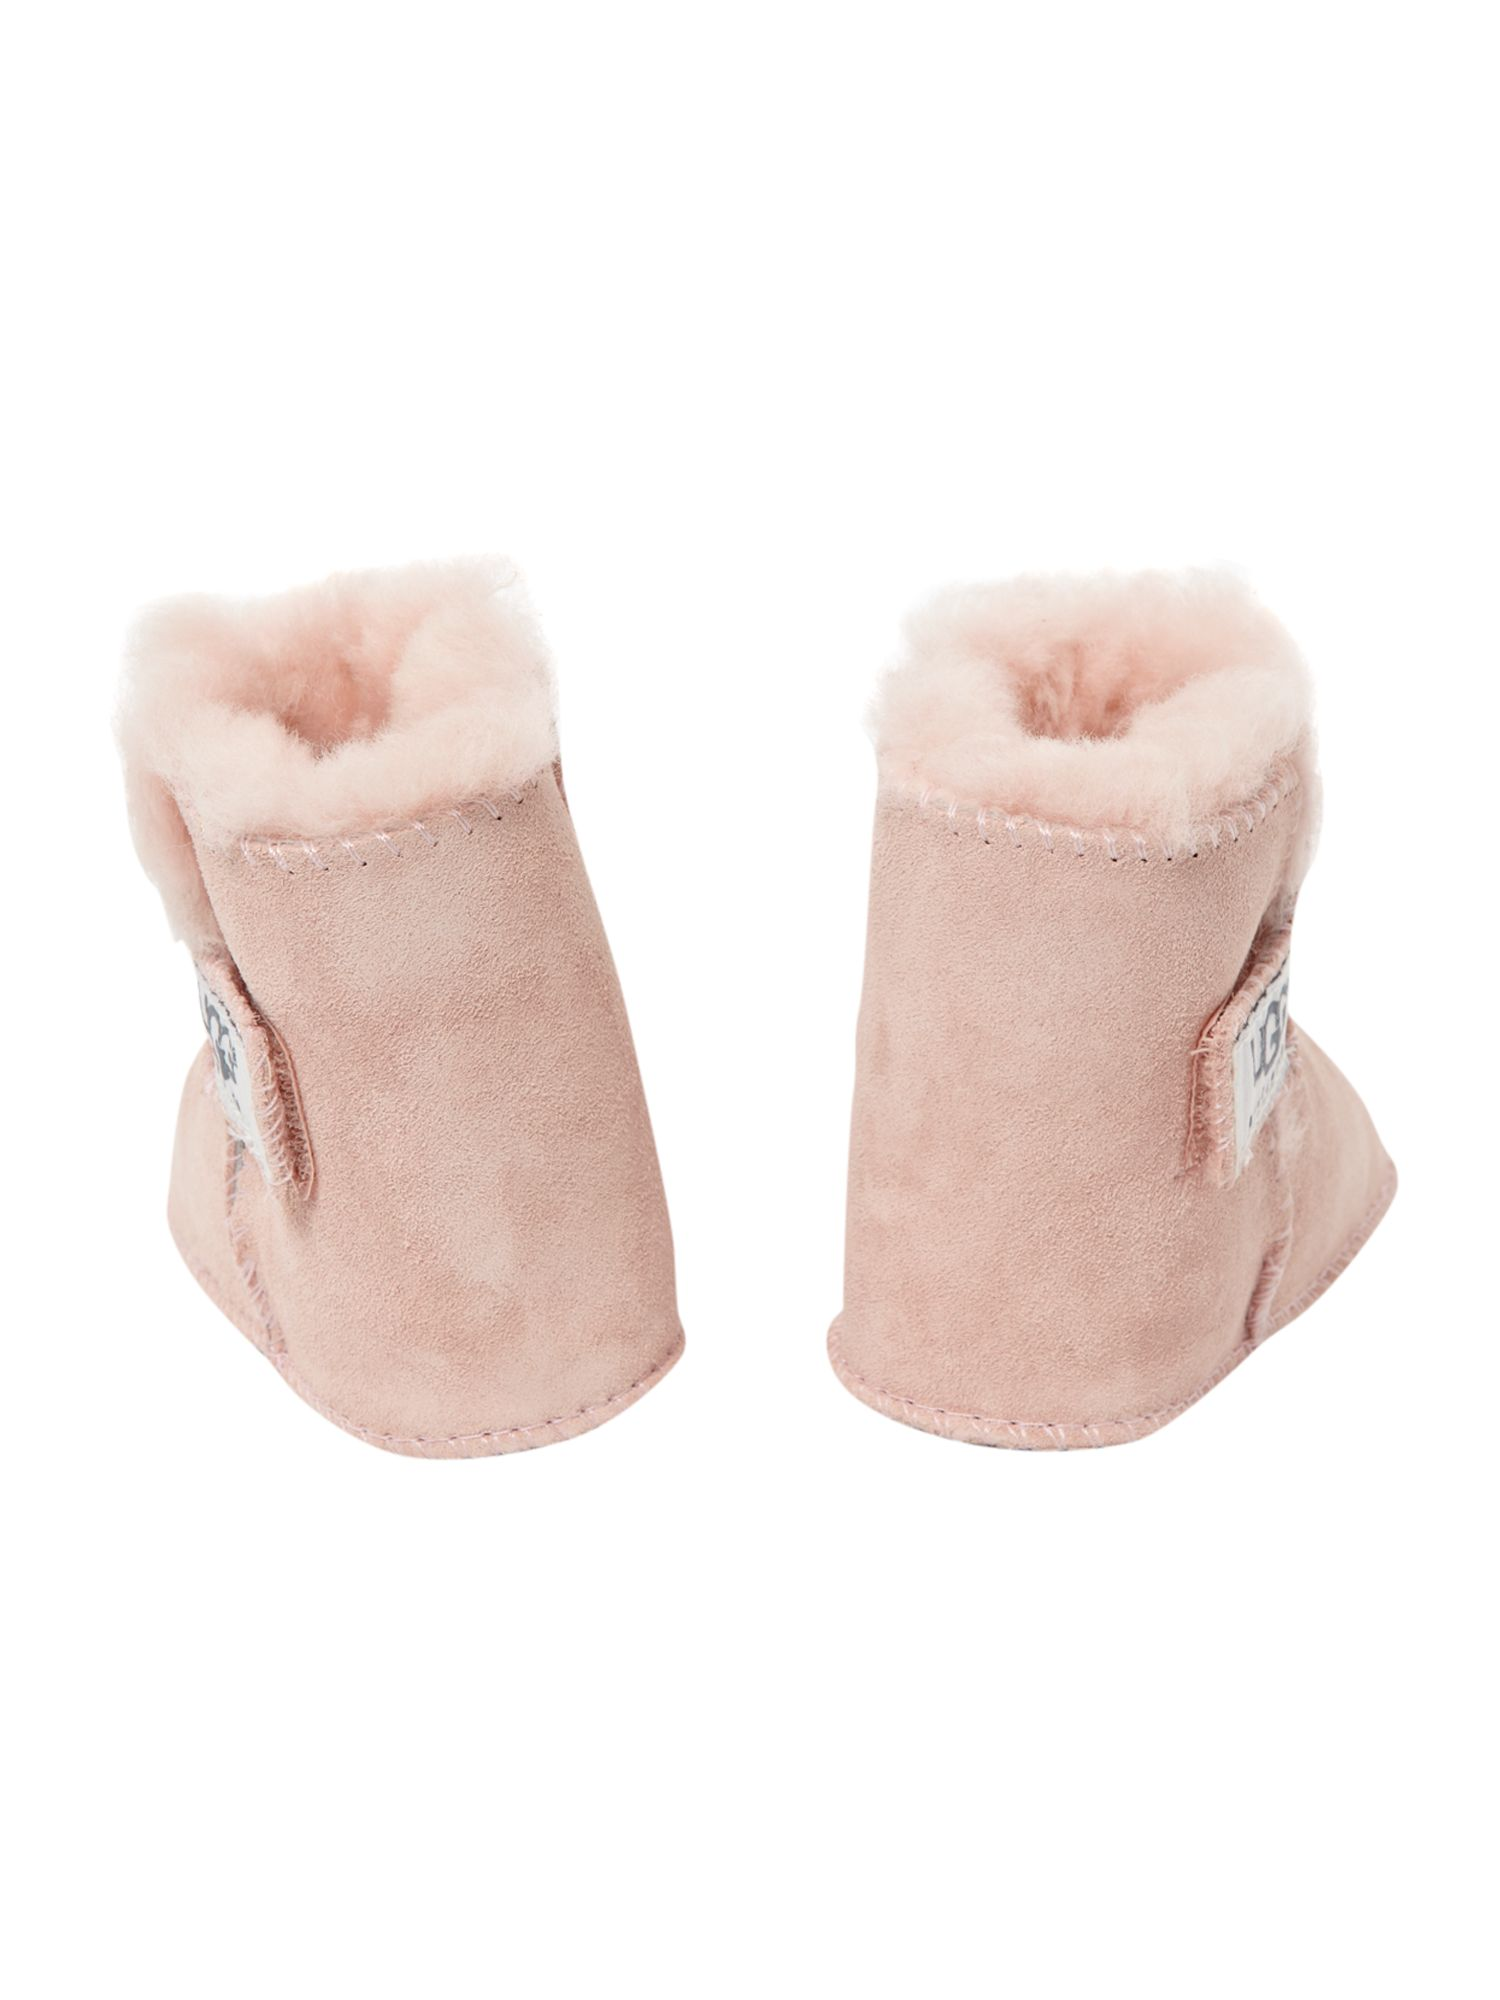 Newborn classic bootie with gift box